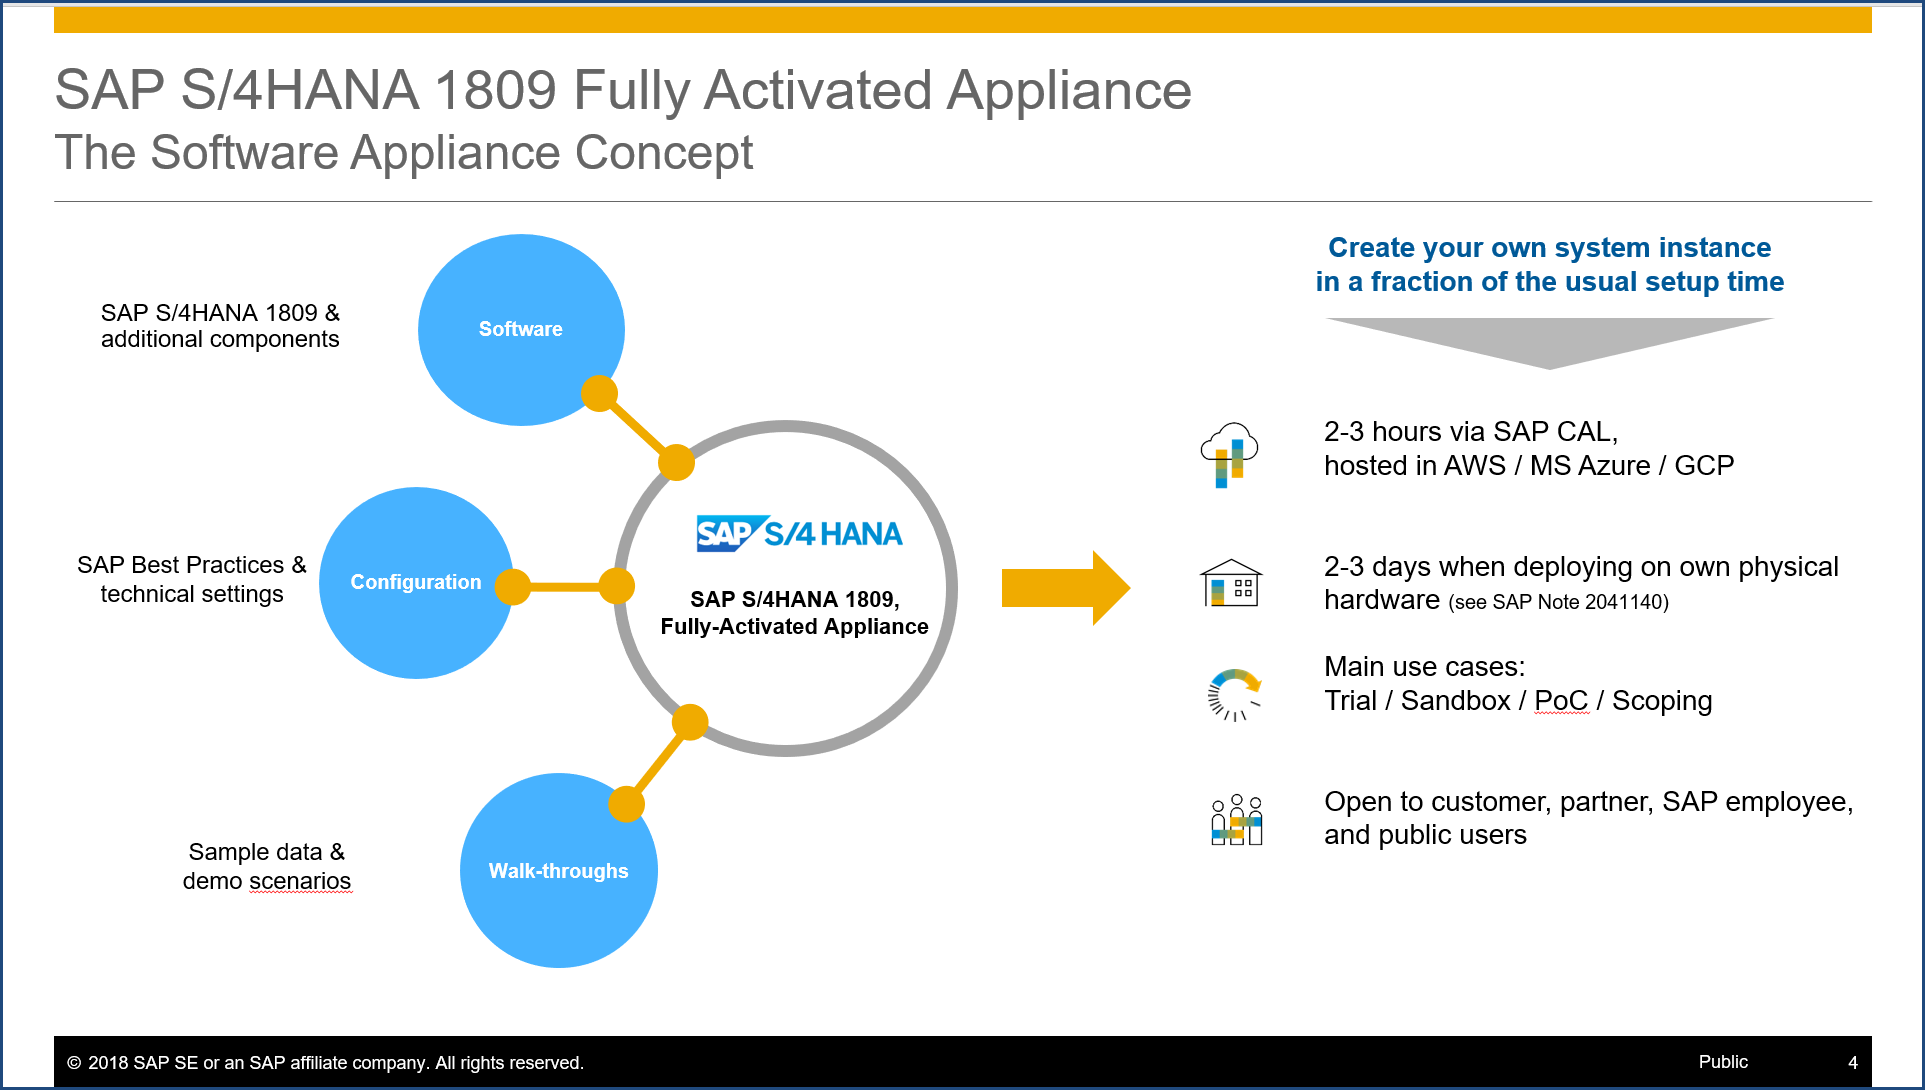 SAP S/4HANA Fully-Activated Appliance: Create your SAP S